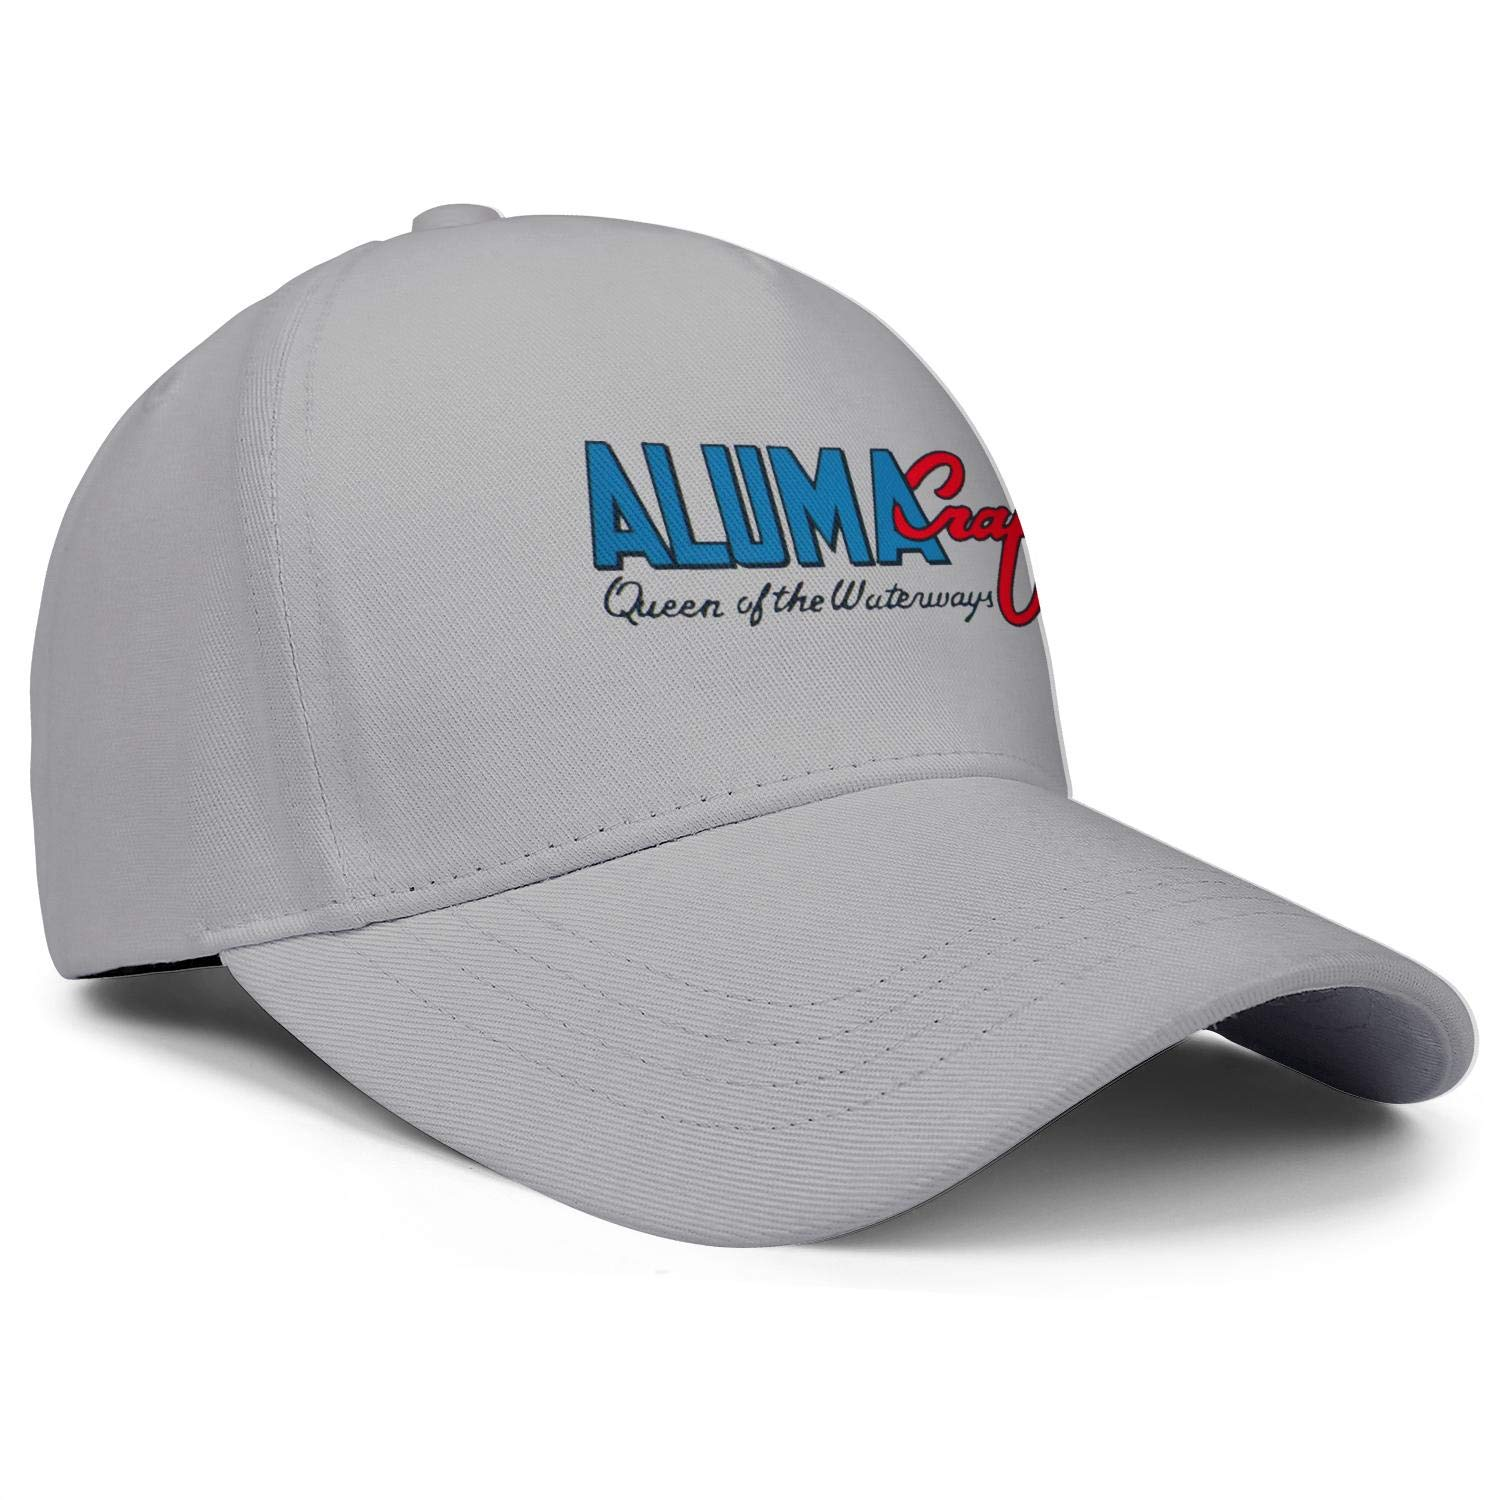 Dad Hats for Women Printted Cotton Adjustable Unisex Ball Cap Gym Mens Baseball Caps Alumacraft-Boat-Logos